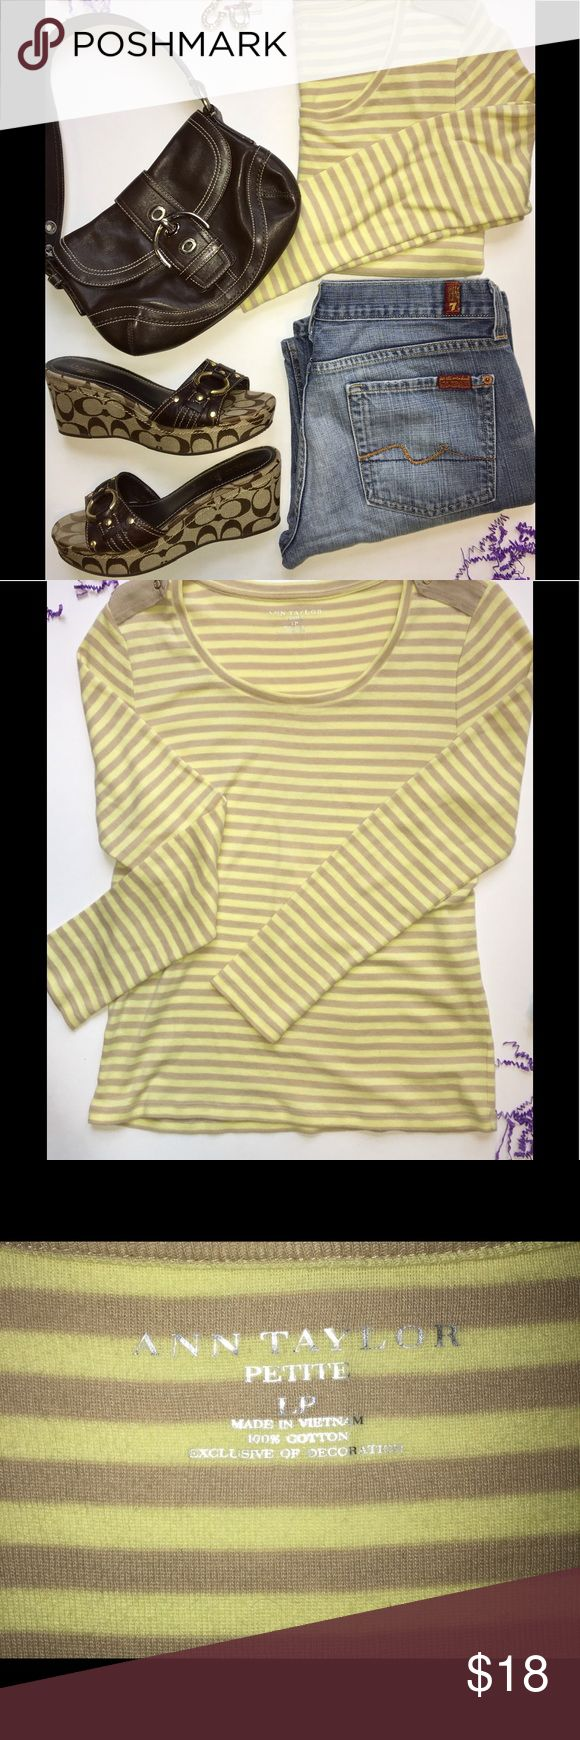 Ann Taylor Lemon & Beige Tee Sz LP Beautiful and comfy soft Ann Taylor lemon yellow and beige striped tee with shoulder epaulette detailing! Love this with denim - blue or white! Petite Large Ann Taylor Tops